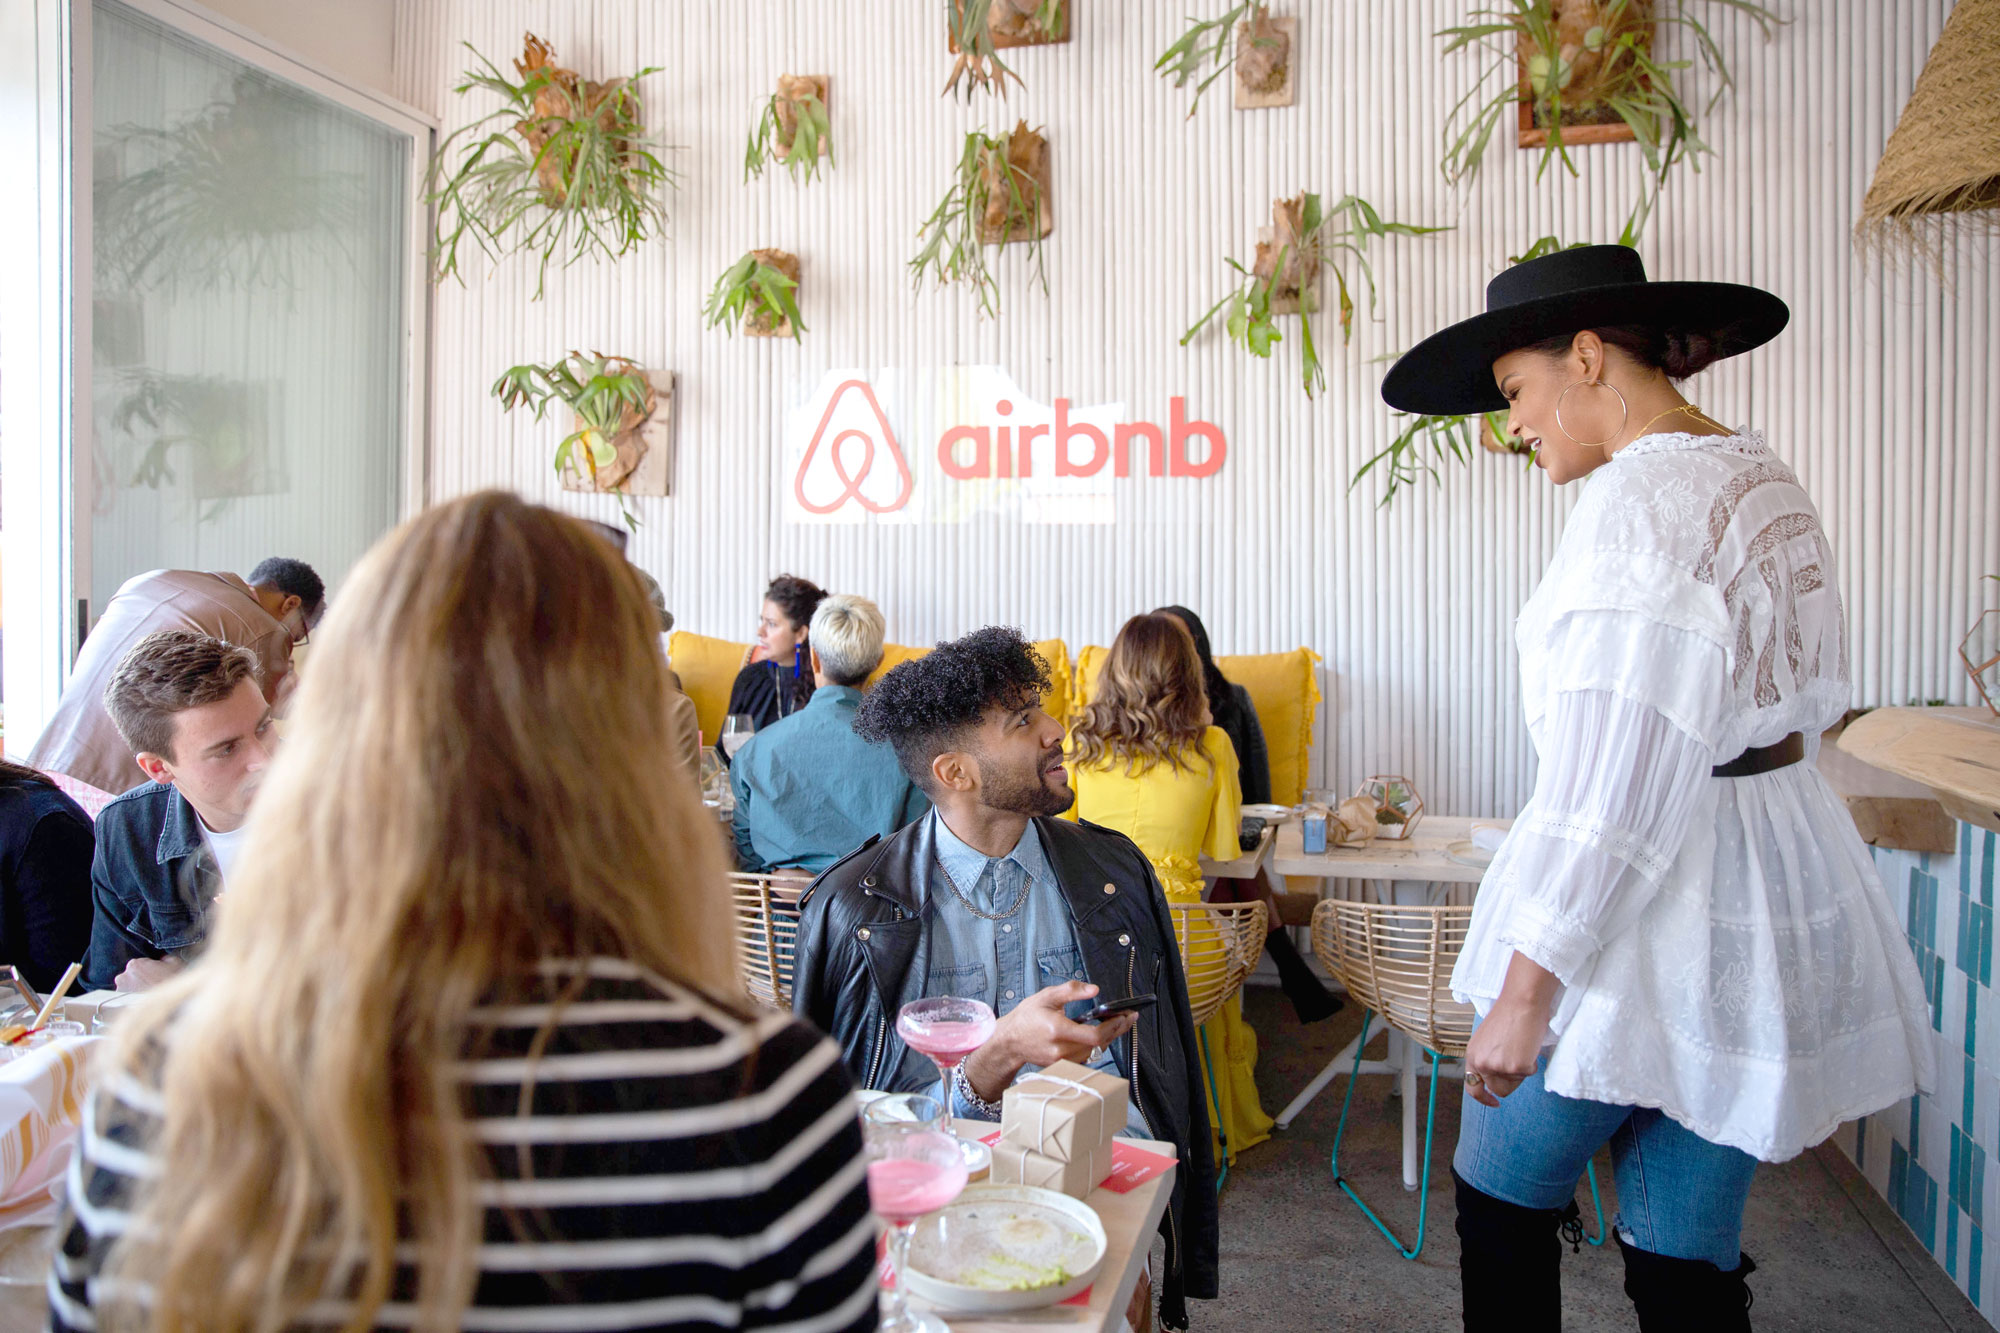 An event for Airbnb